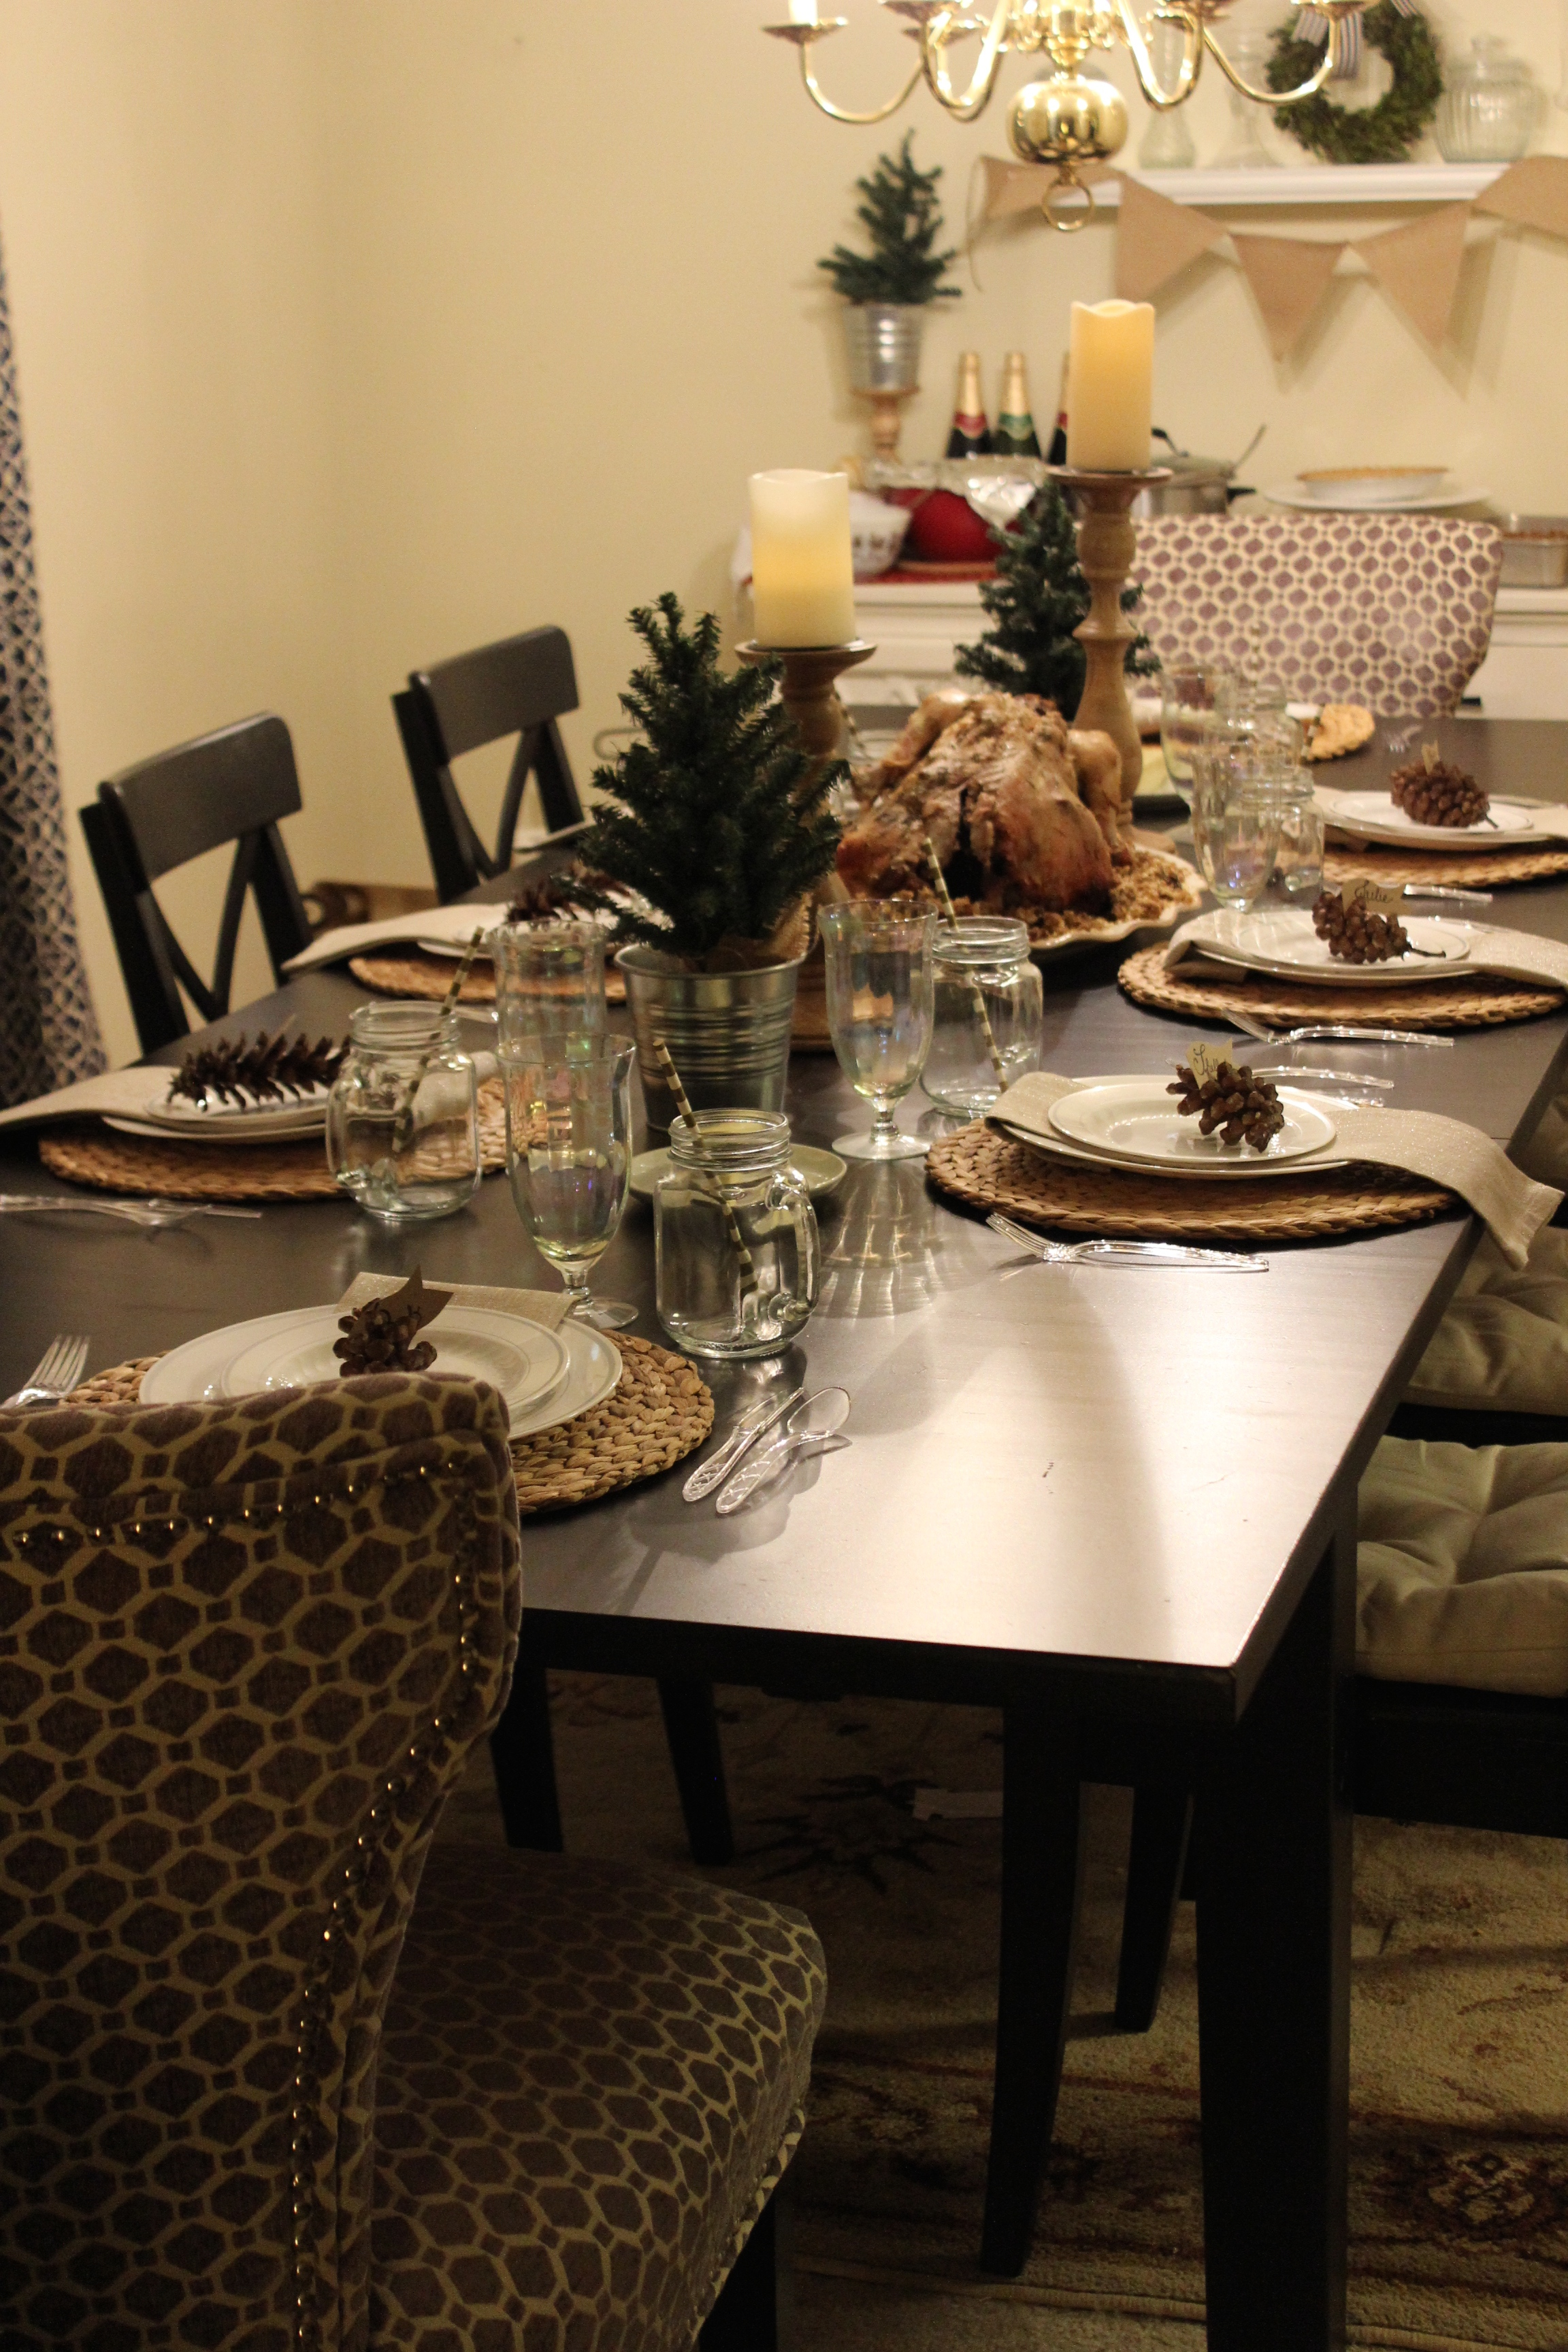 PInecones make great place card holders in this Thanksgiving table decor